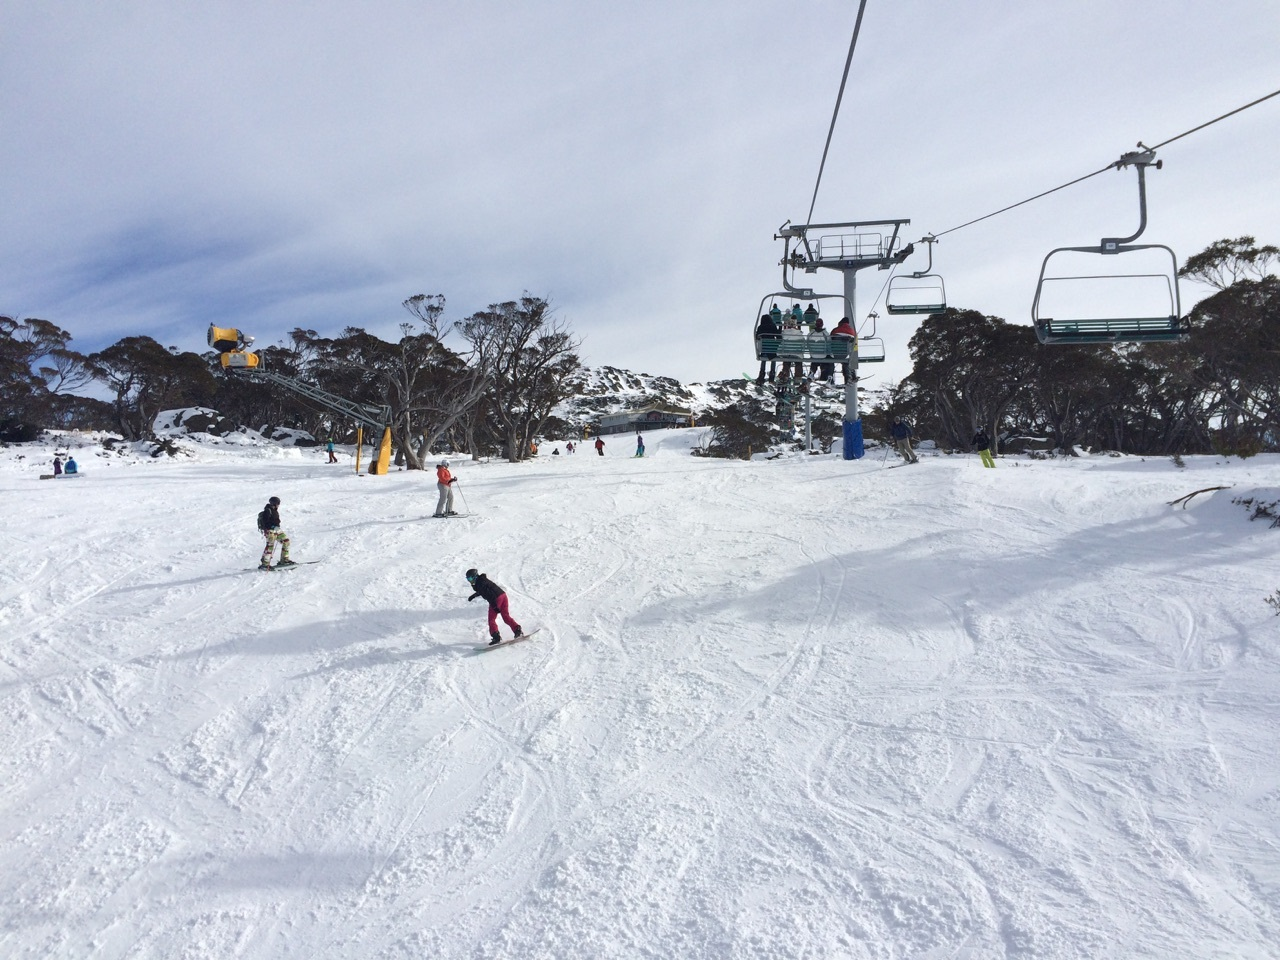 Front mountain Perisher Valley. First day of 2015 season. My friend Phil Thomas sent me this photo just to make me feel bad.